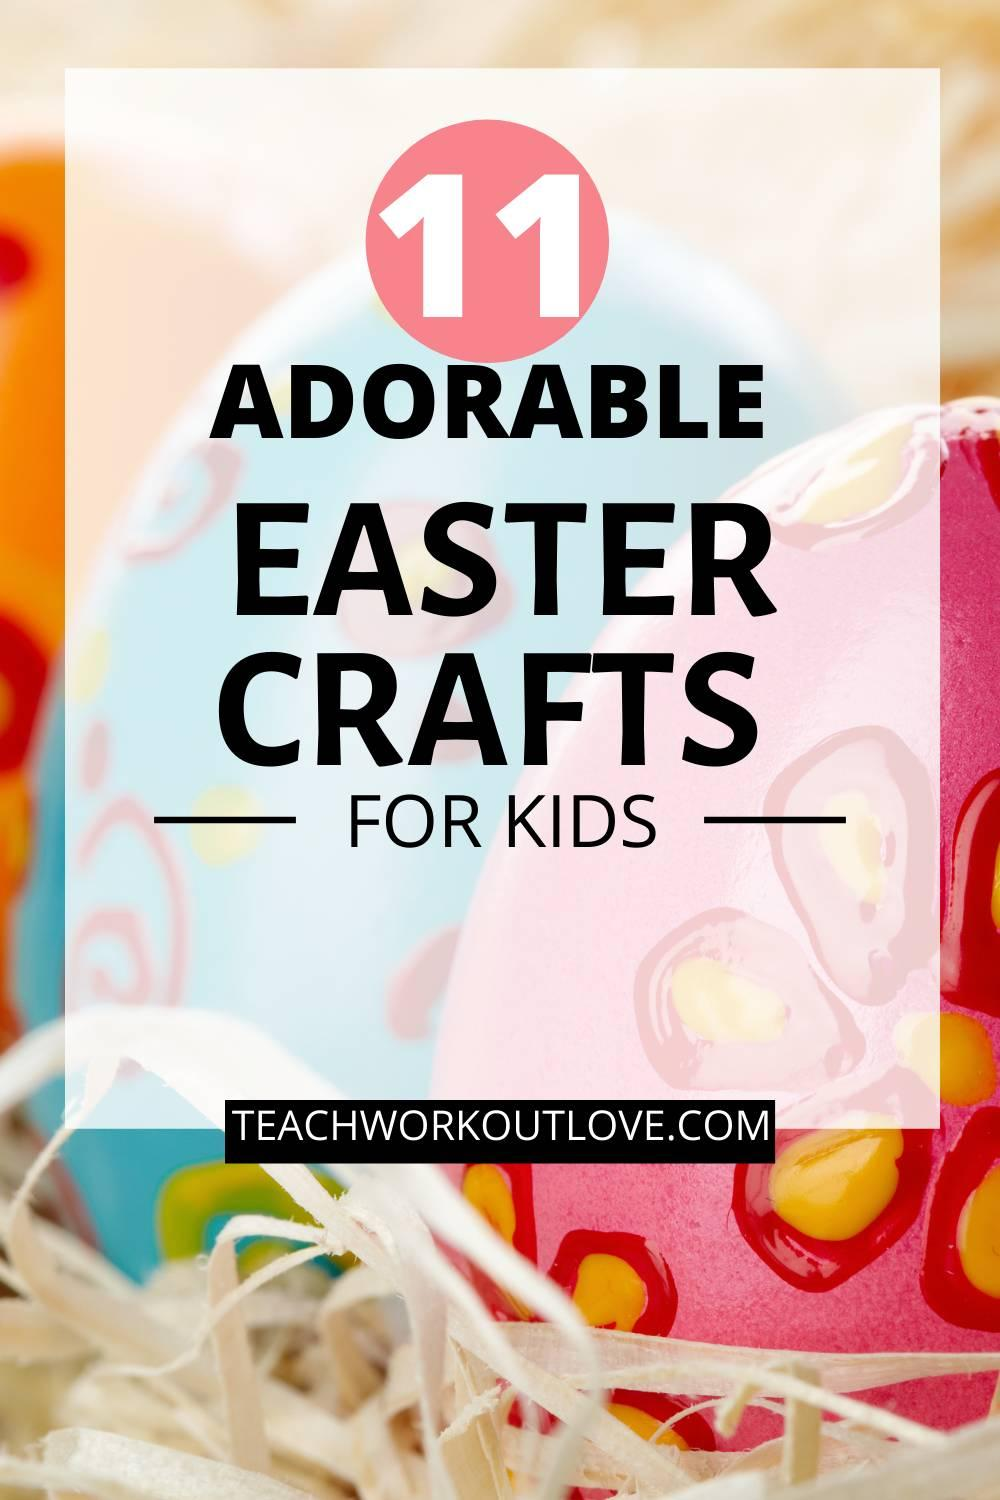 Getting ready for Easter but need some crafts to do with your kids at home? Here are Easter crafts your kids are guaranteed to fall in love with.